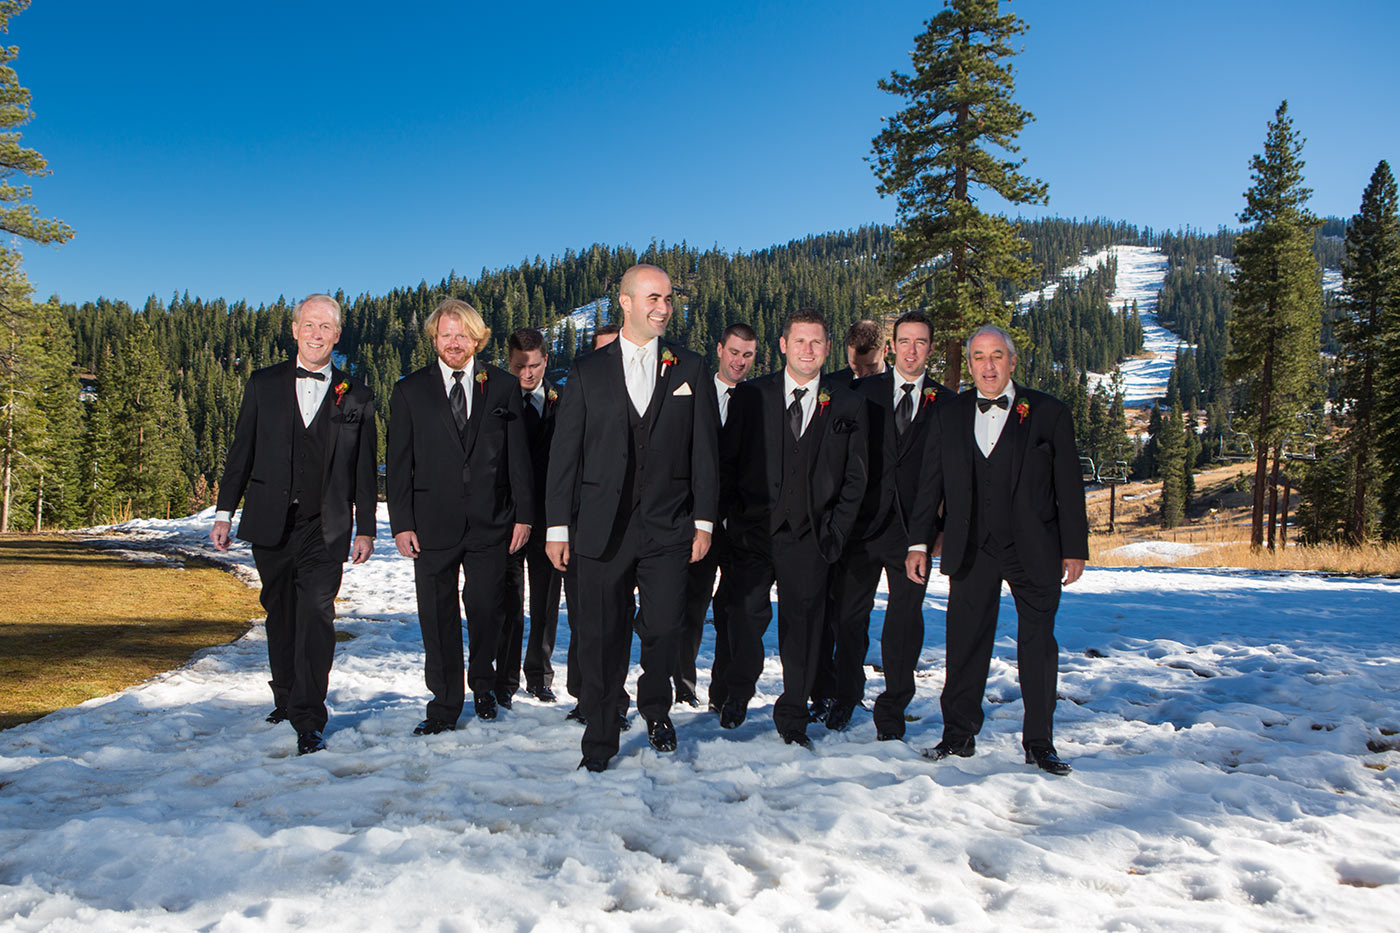 Ritz-Carlton-Lake-Tahoe-wedding-photos-20-